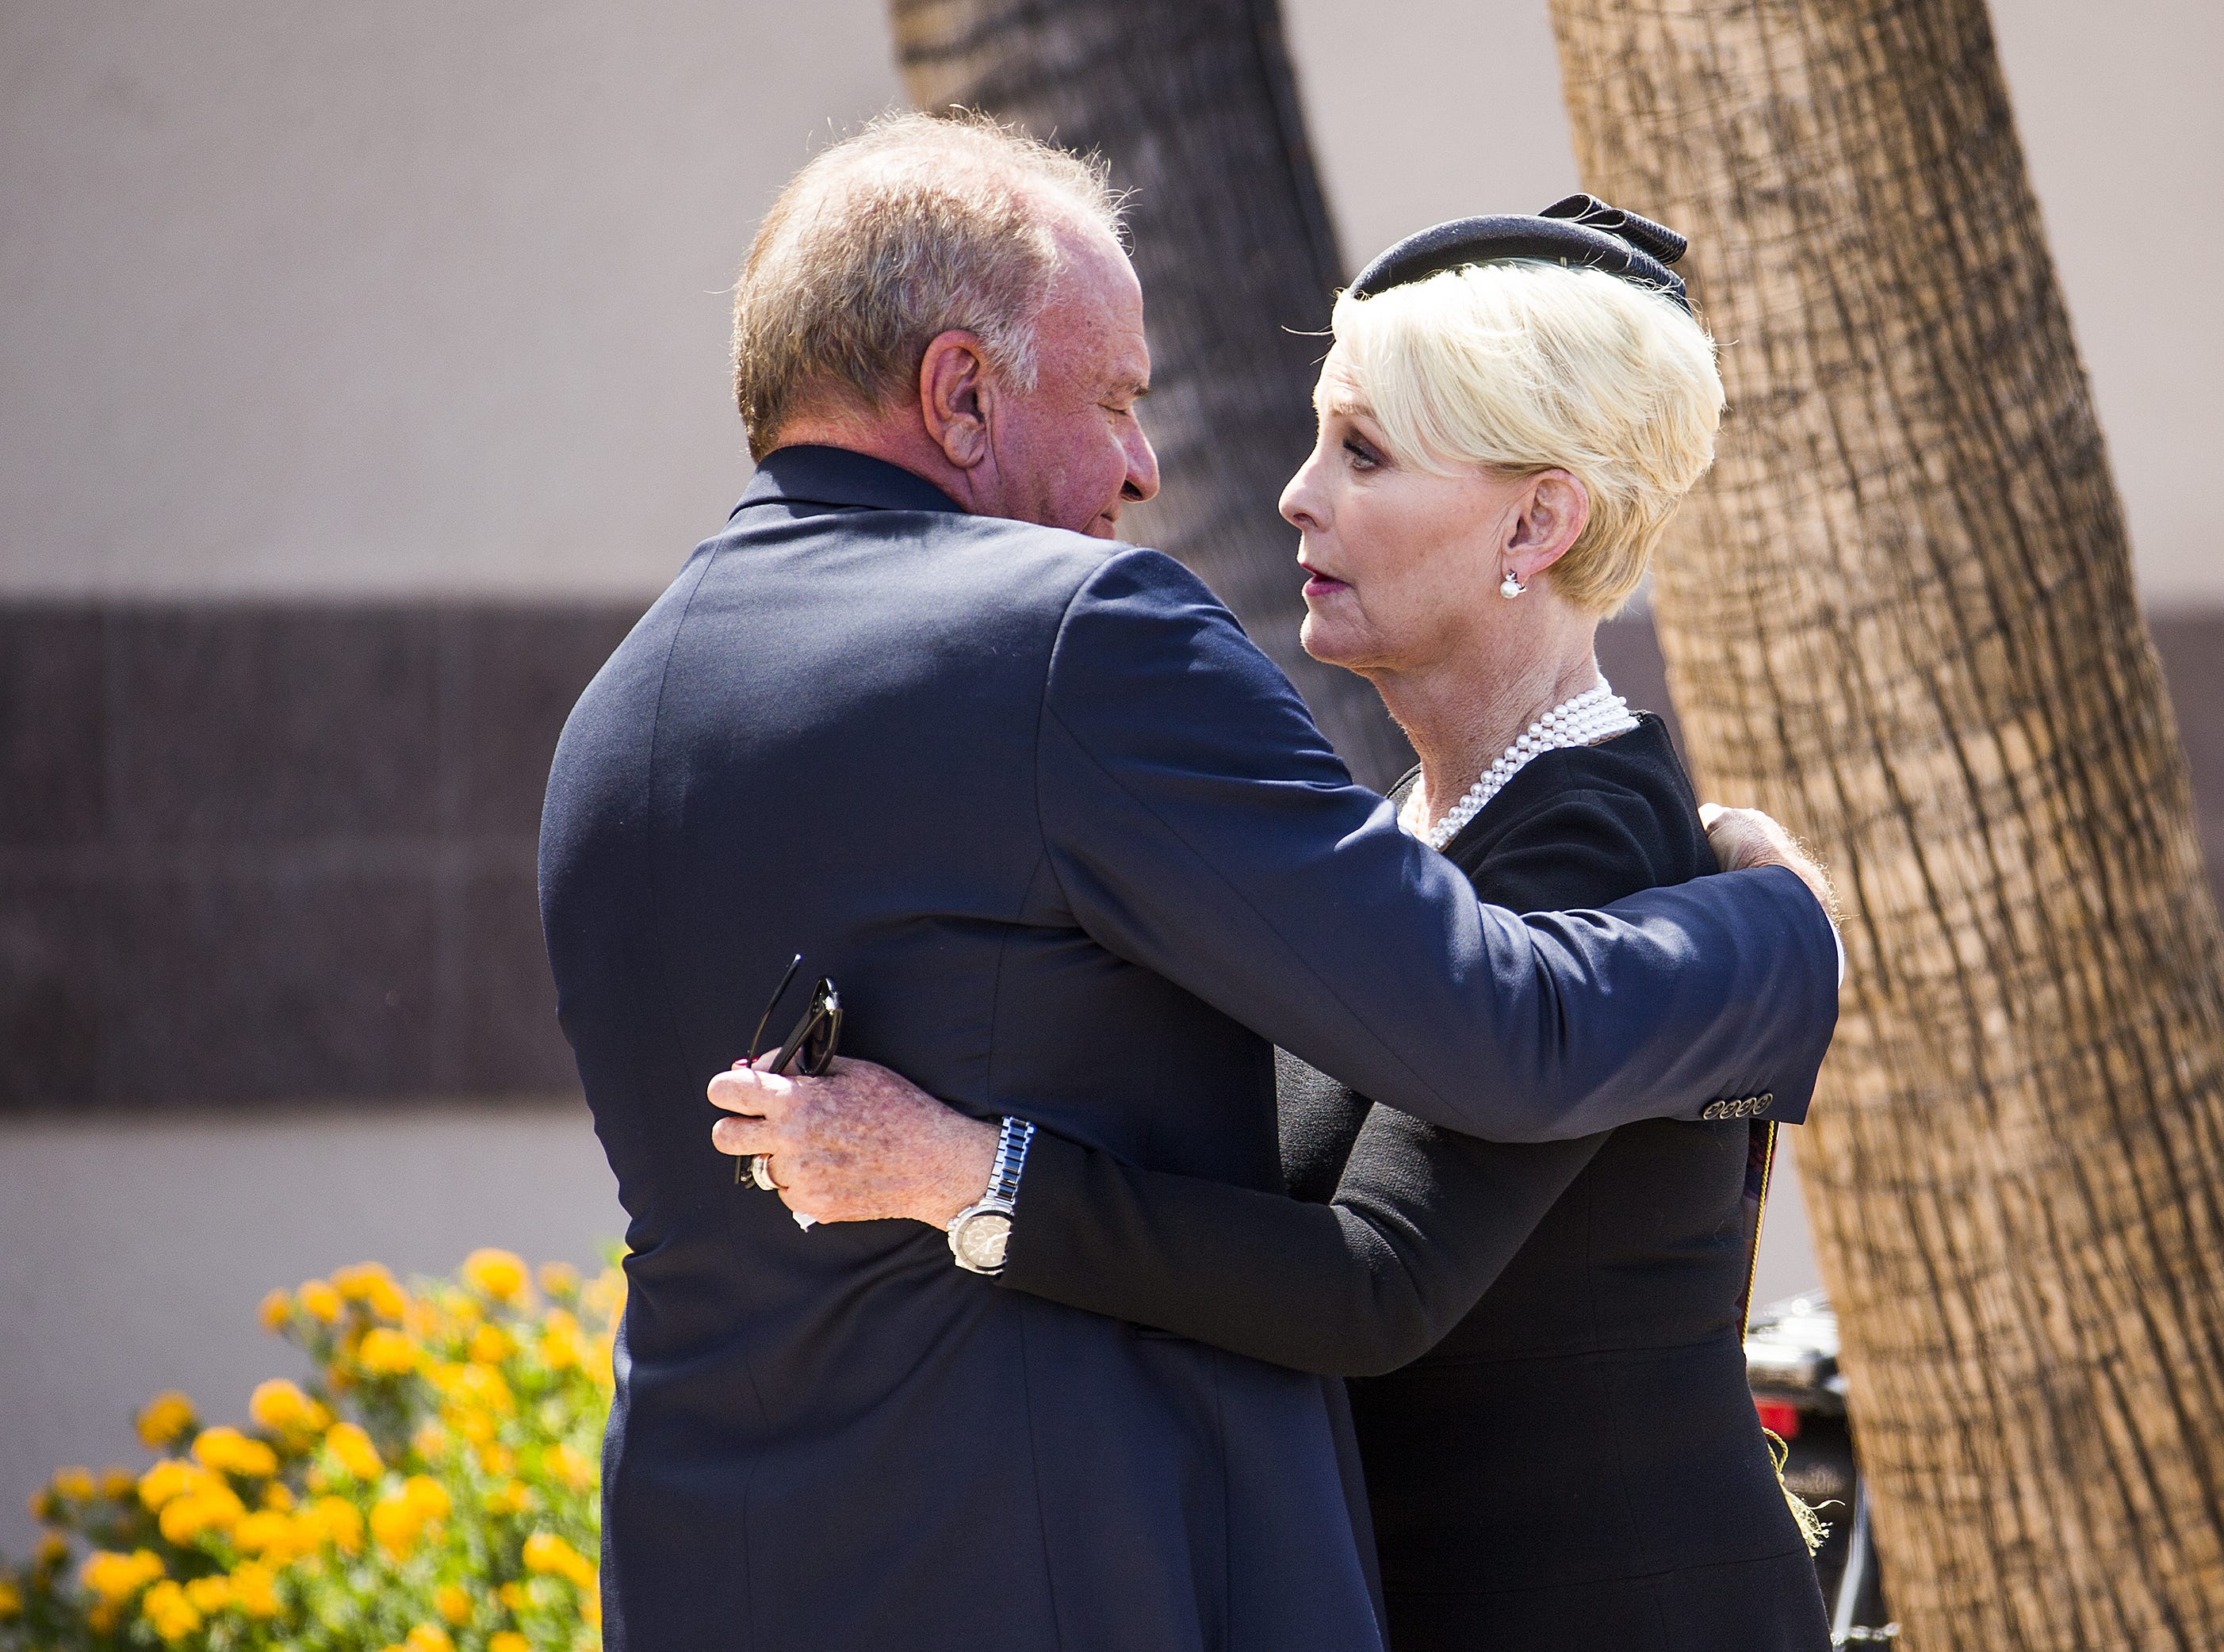 Former Arizona Attorney General Grant Woods says goodbye to Cindy McCain after a memorial service for Sen. John McCain at North Phoenix Baptist Church in Phoenix on Aug. 30, 2018.